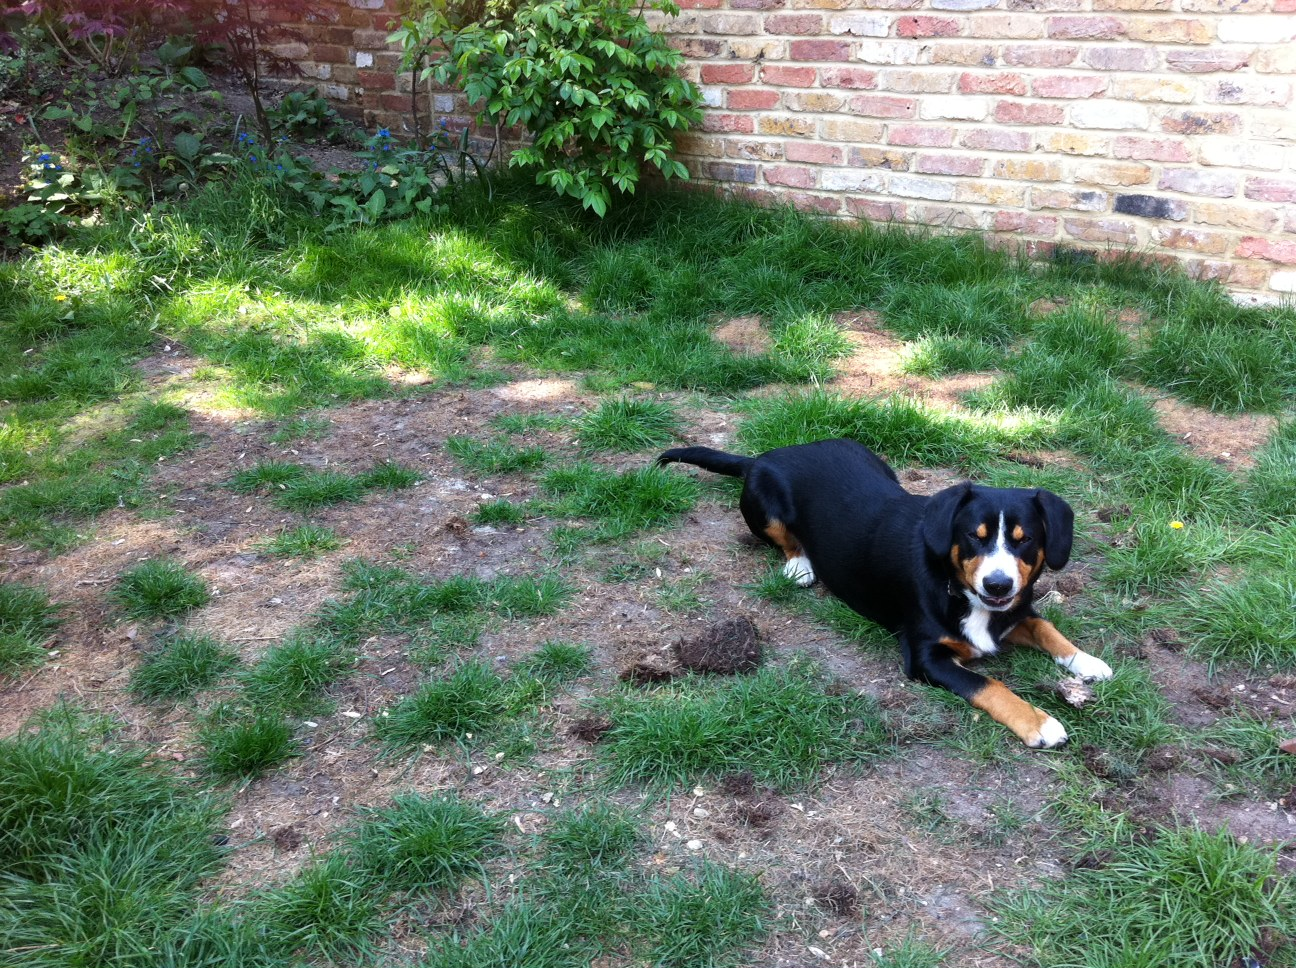 Dog laying on grass with brown patches from dog urine